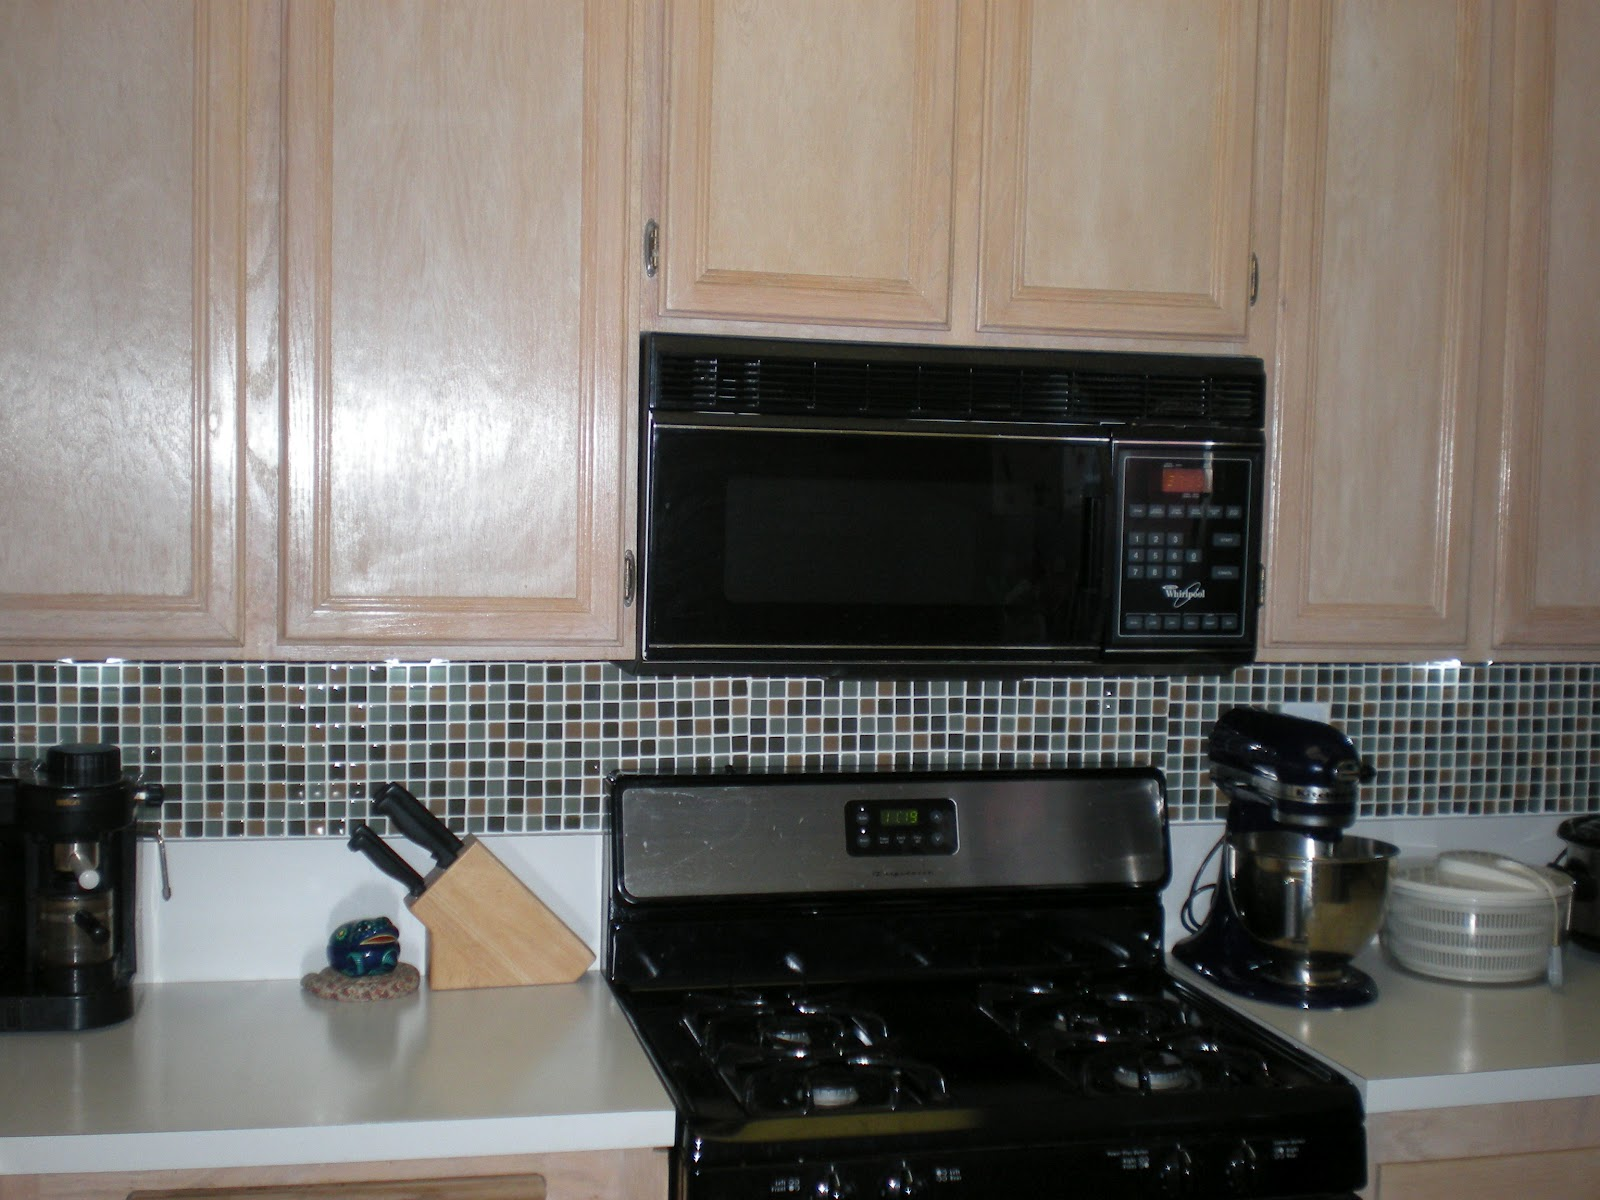 Laminate Countertop with Tile Backsplash